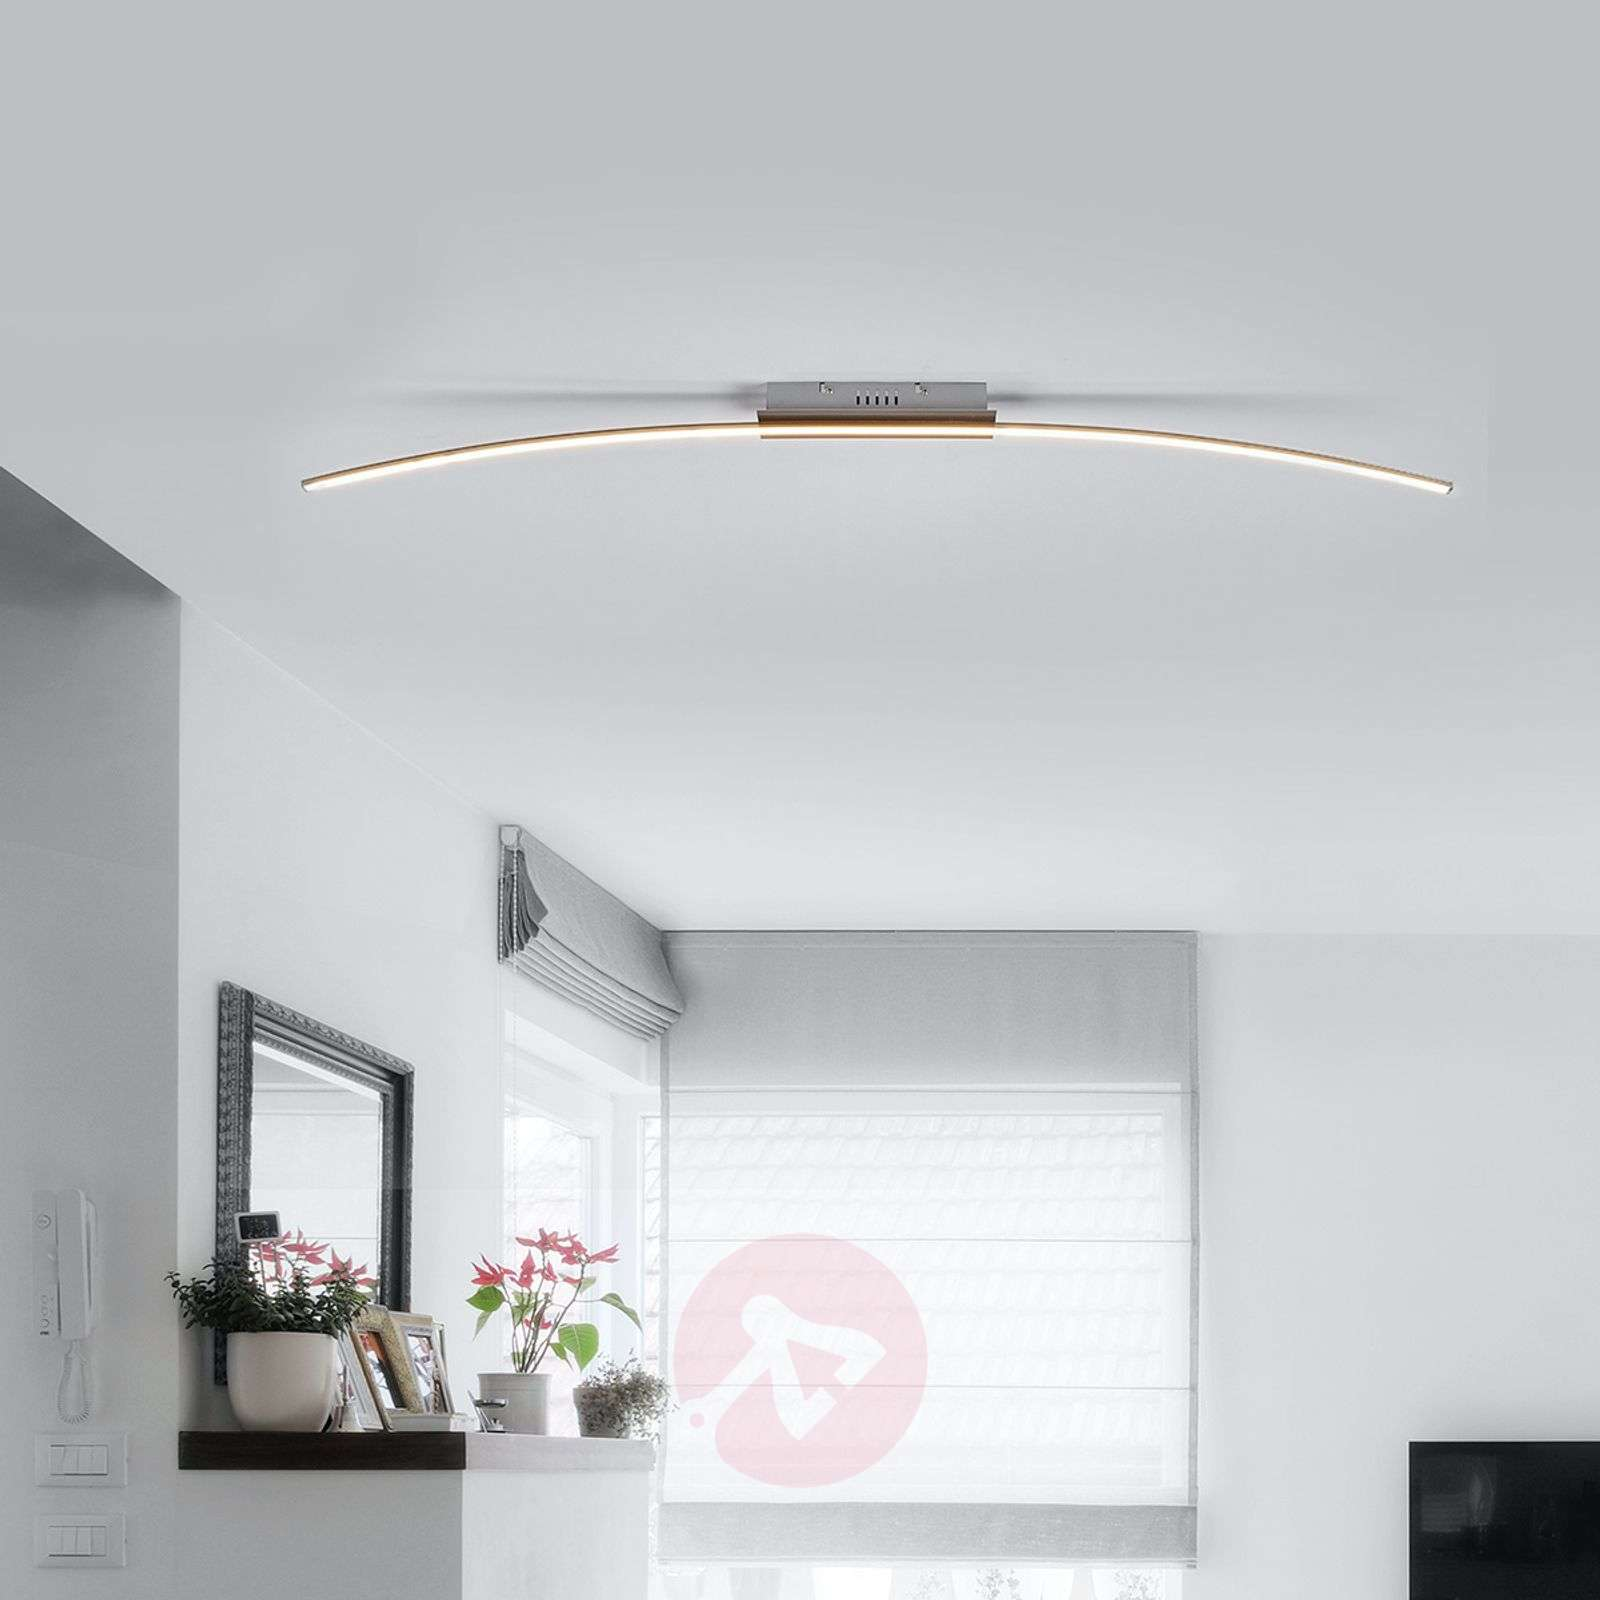 Minimalistic LED ceiling lamp Iven-9985050-01